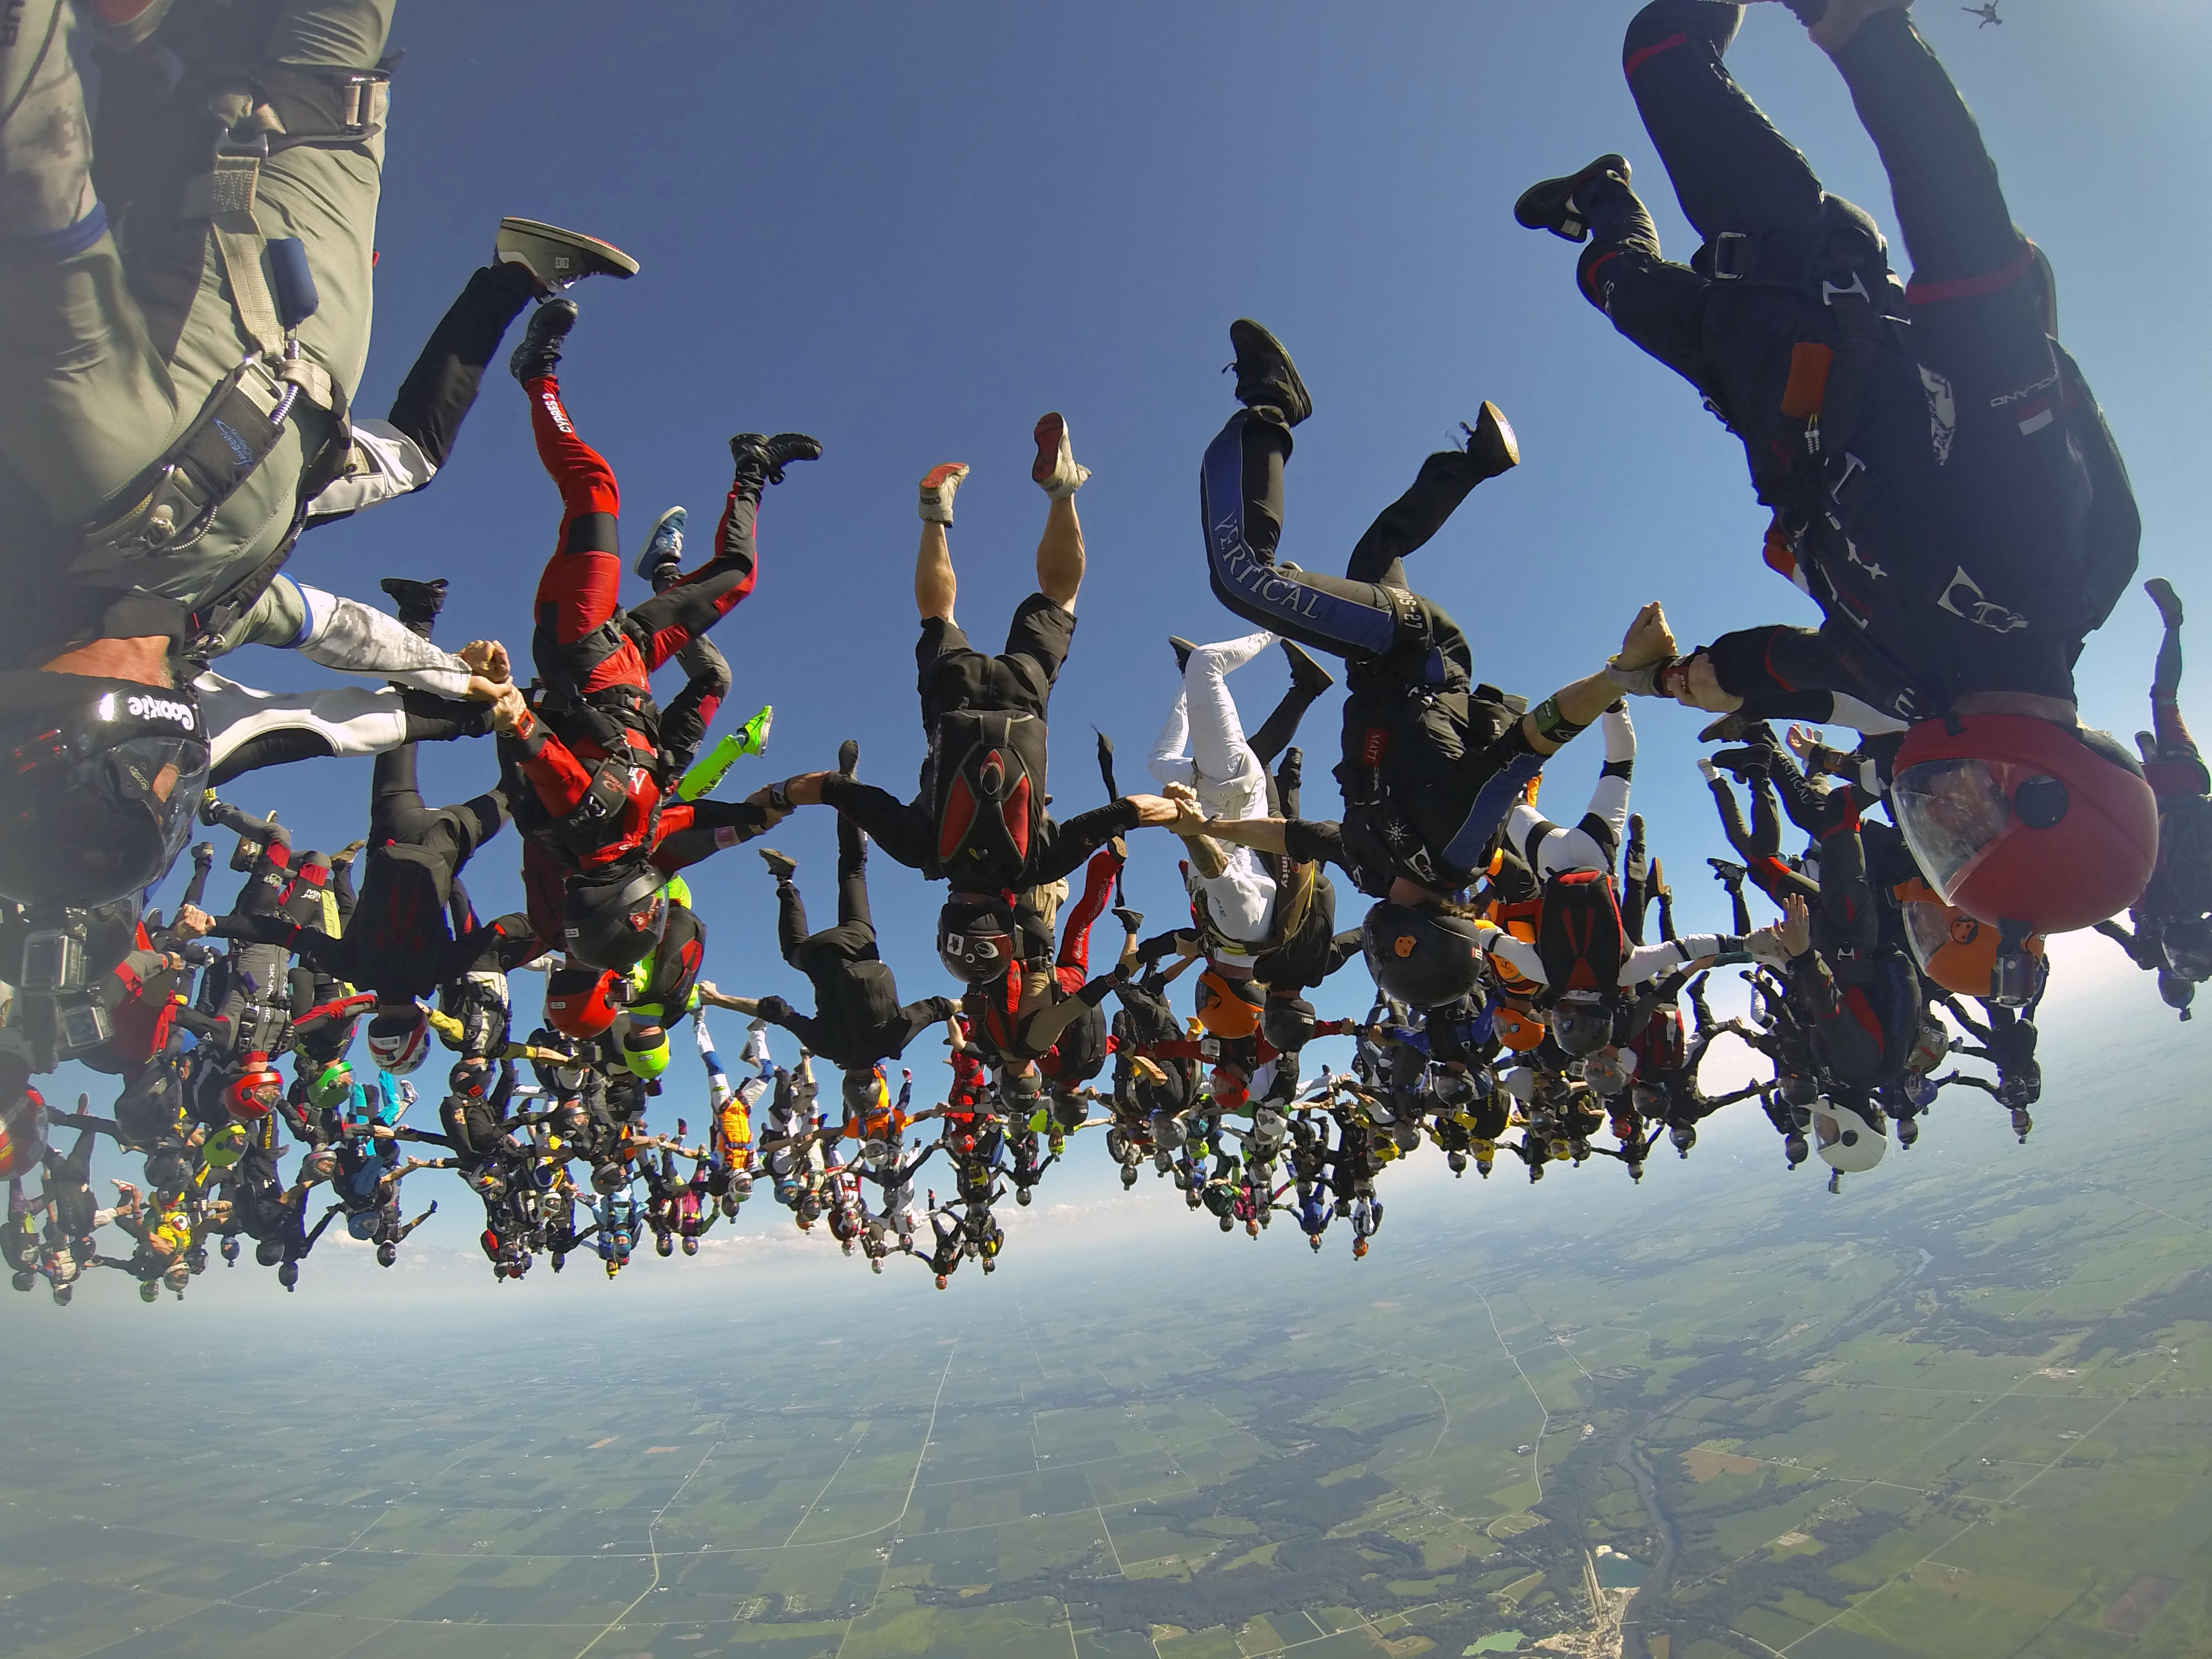 Members of an international team of skydivers join hands flying head-down to build their world record skydiving formation on July 31, 2014, over Ottawa, Ill.